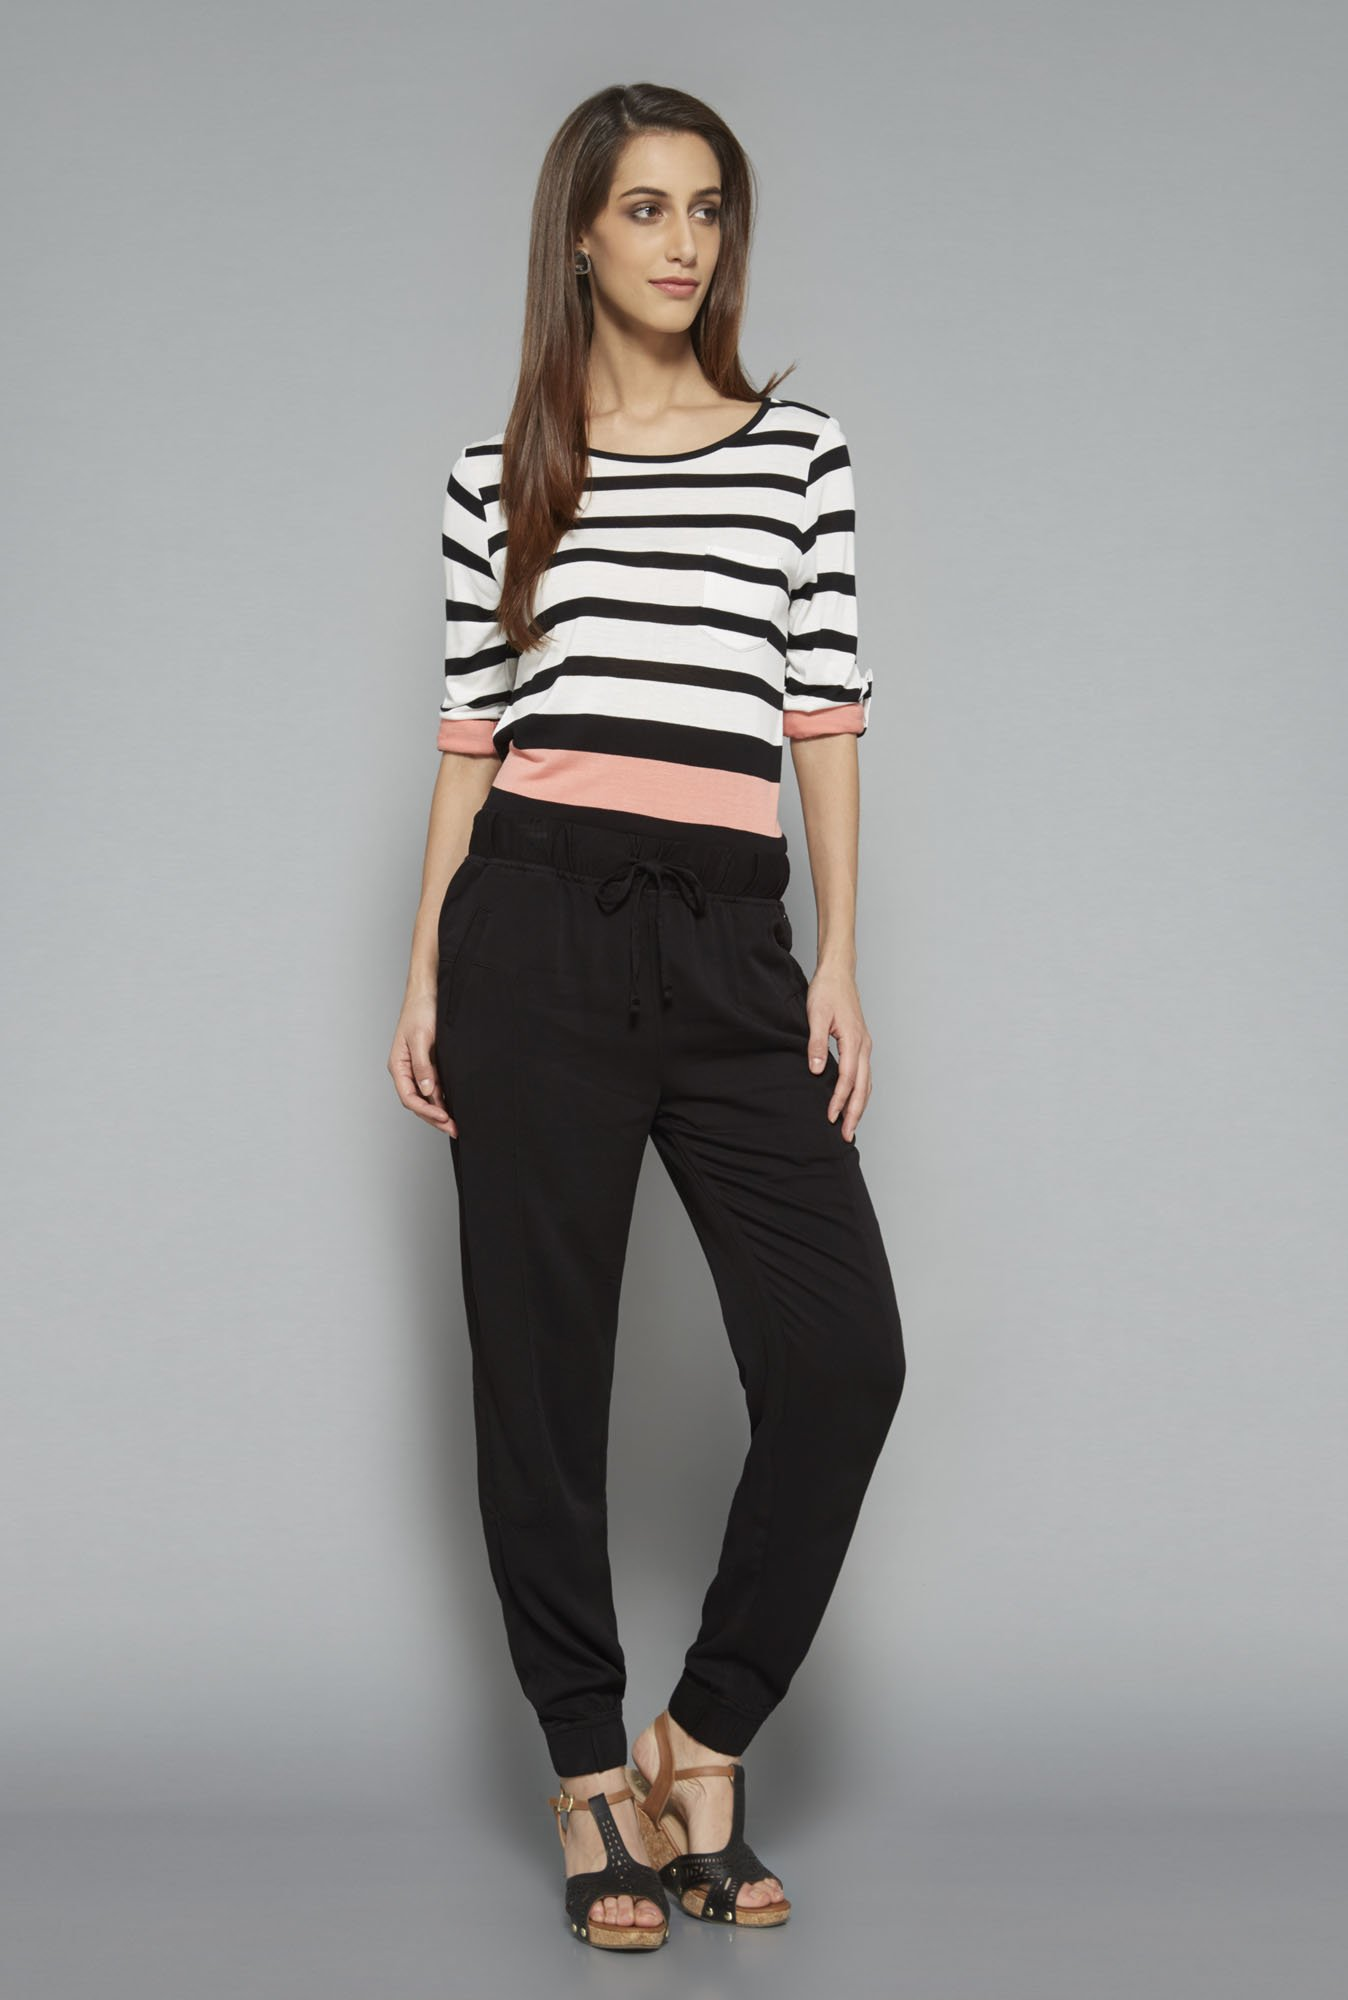 L.O.V Black Striped Top